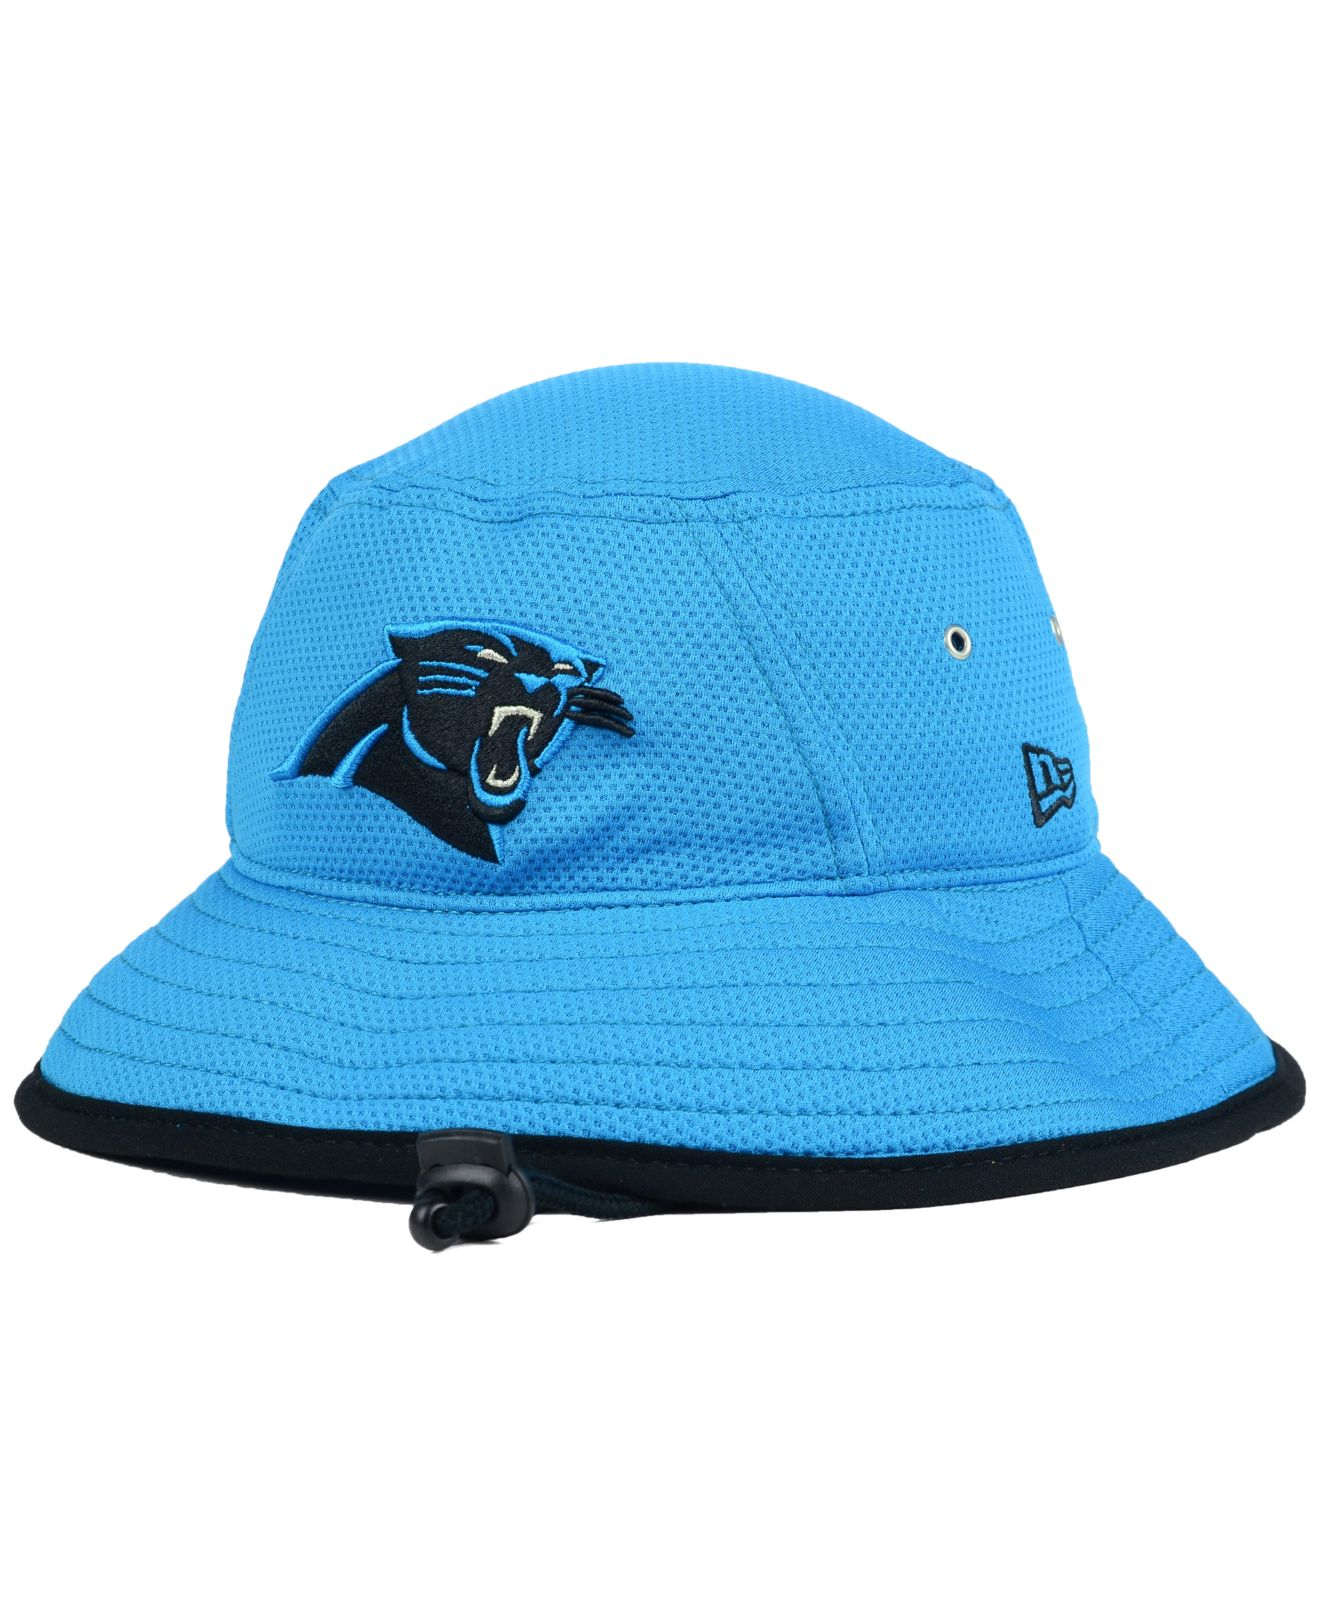 5f7e1d7ca6c Lyst - KTZ Carolina Panthers Training Bucket Hat in Blue for Men